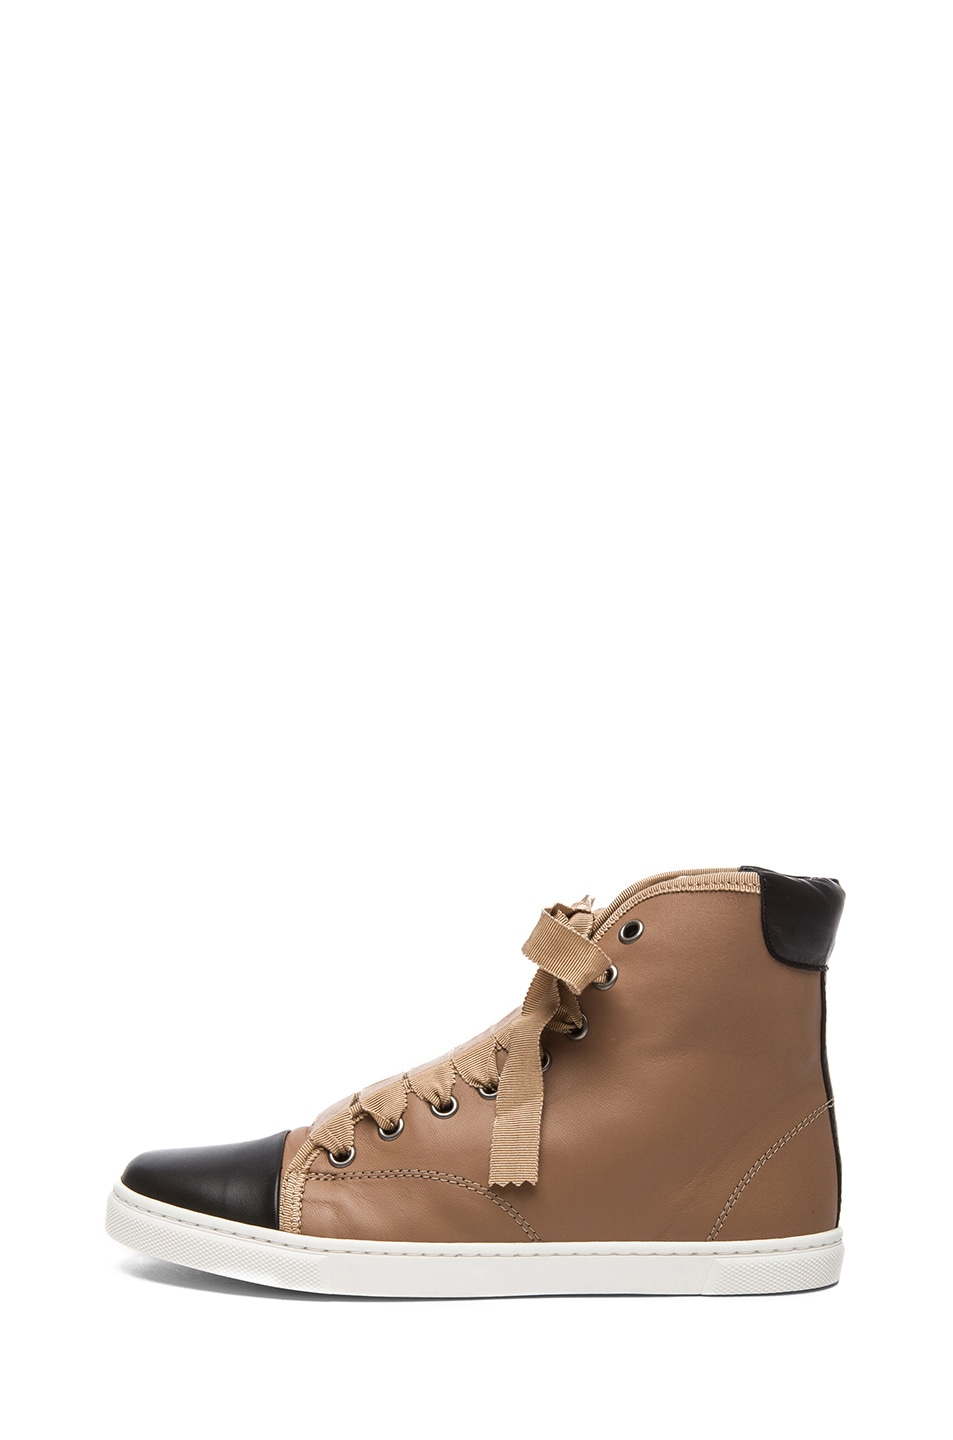 Image 1 of Lanvin Lambskin Leather High Top Sneaker in Moka